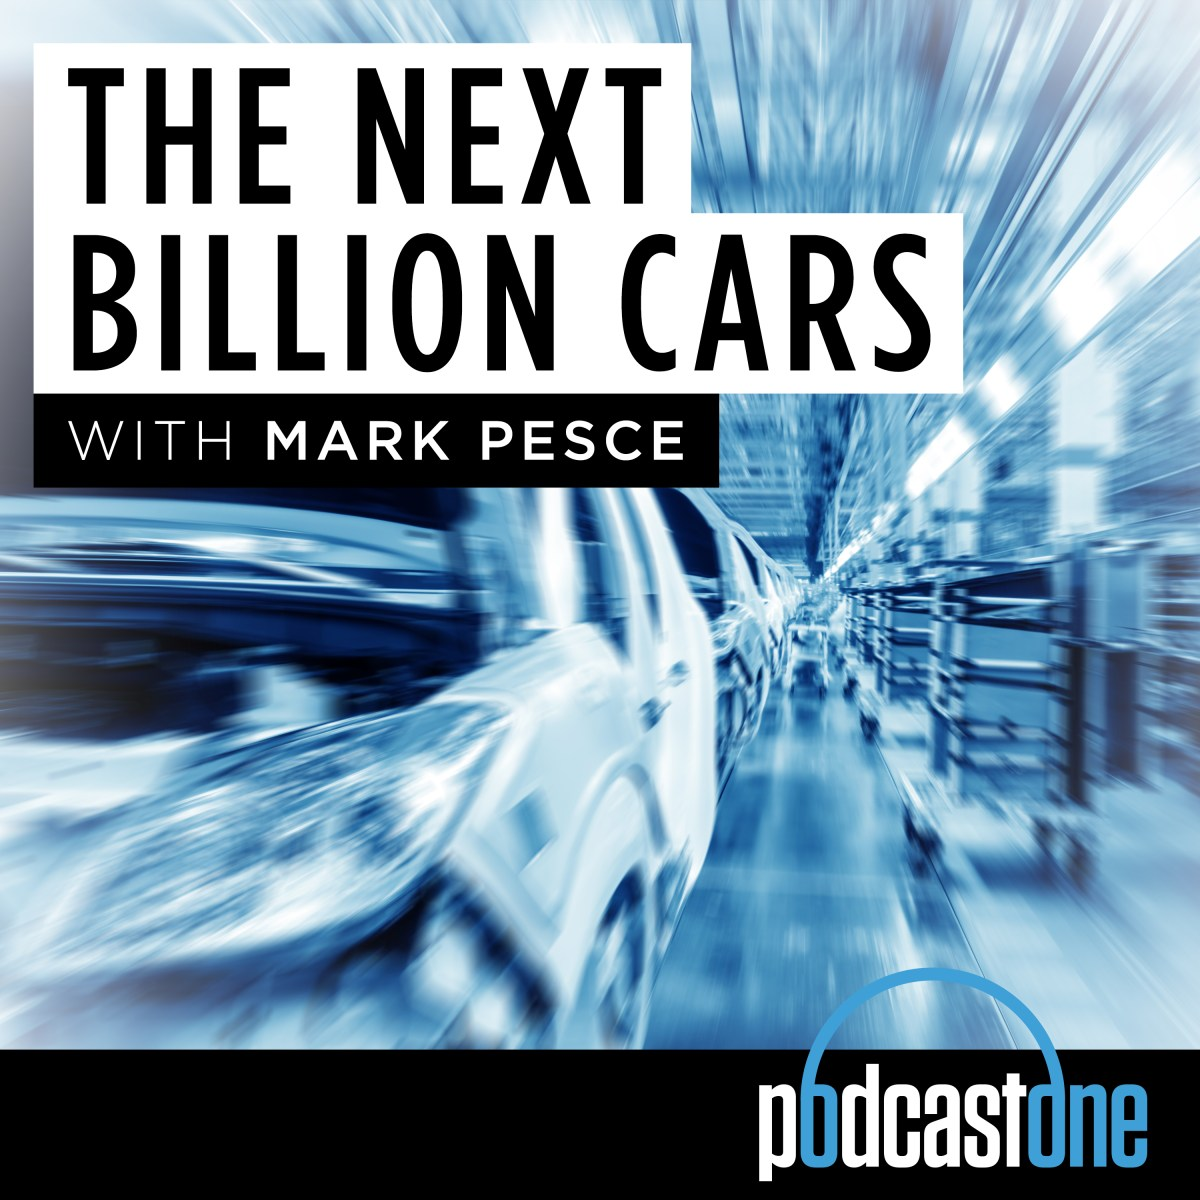 THE NEXT BILLION CARS Episode 2: The Next Billion Robots